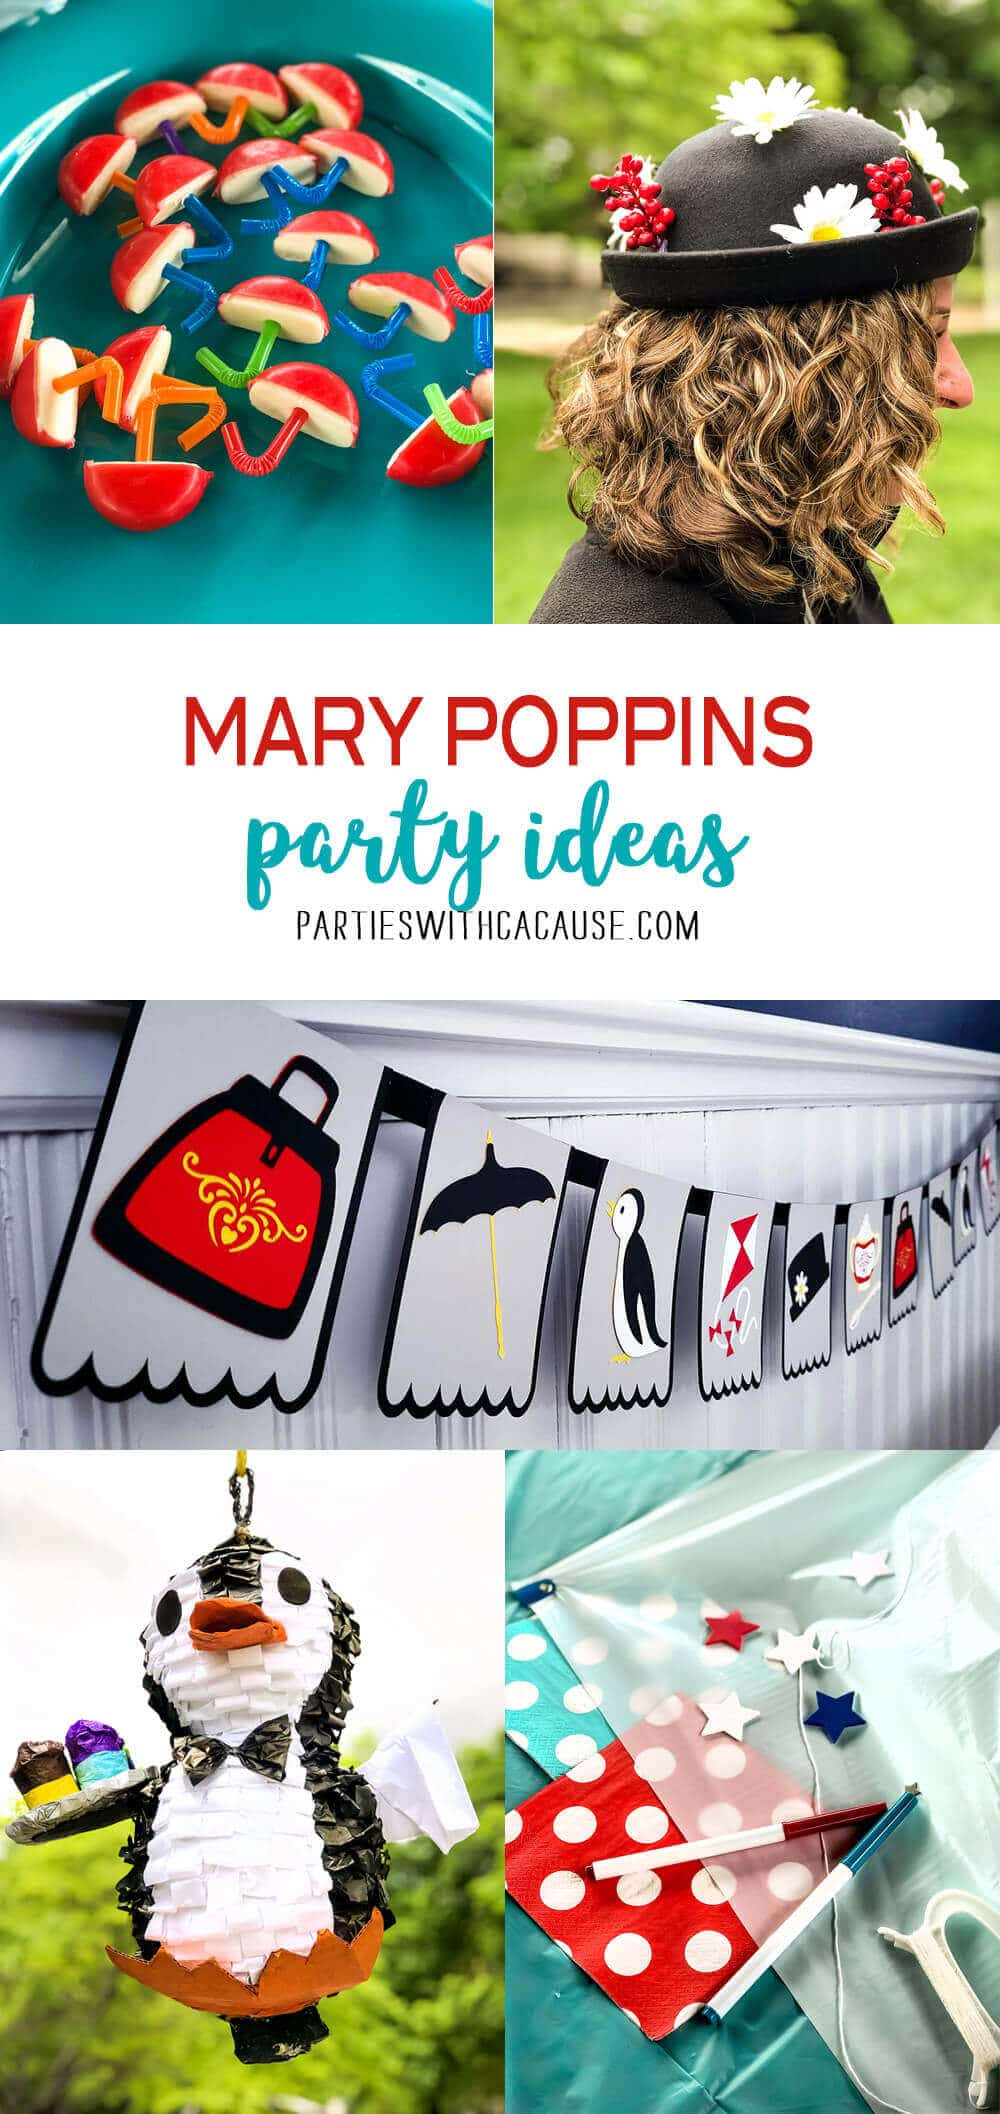 Mary Poppins Party Ideas for Pinterest